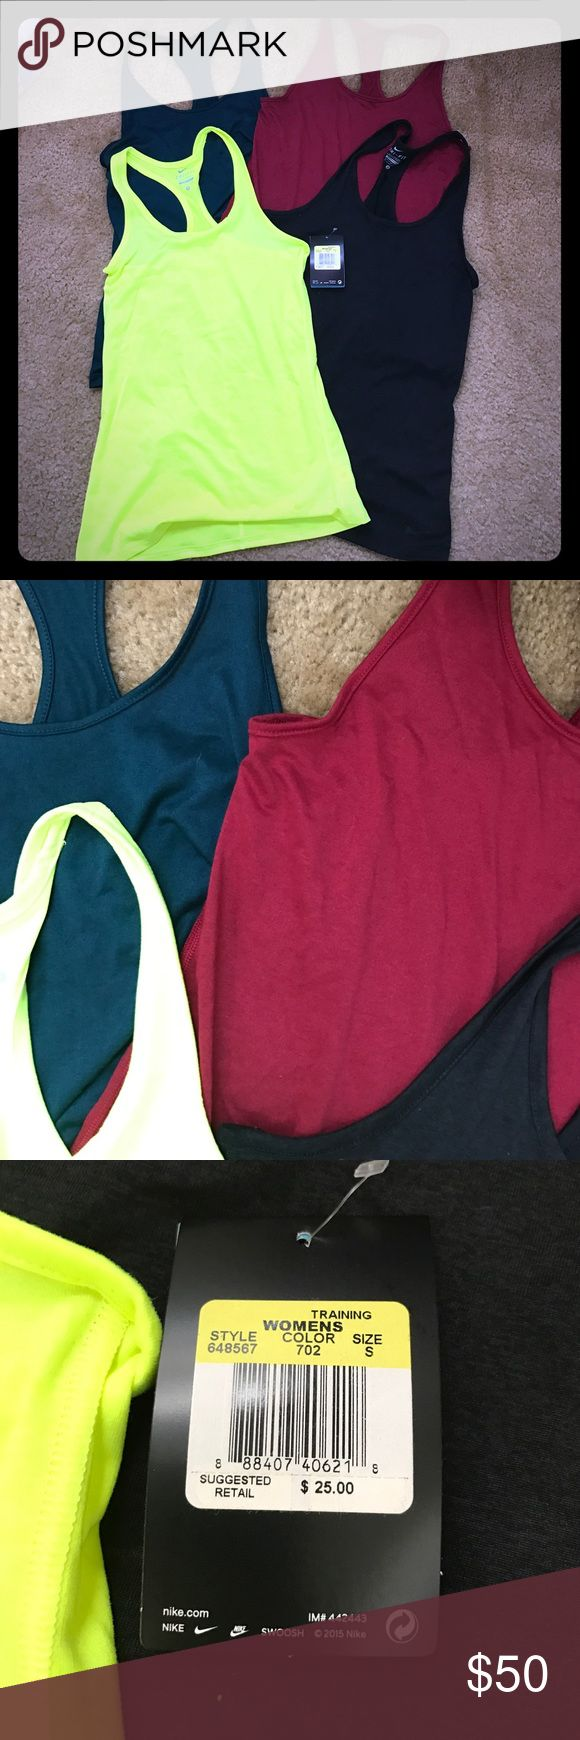 Four Nike Balance Drifit workout tank tops Neon yellow is new with tags. Others have been washed and worn a few times, but I don't see any signs of damage such as snags/tears. Colors are burgandy, dark teal, black, and neon yellow/green. All size small. Nike Tops Tank Tops